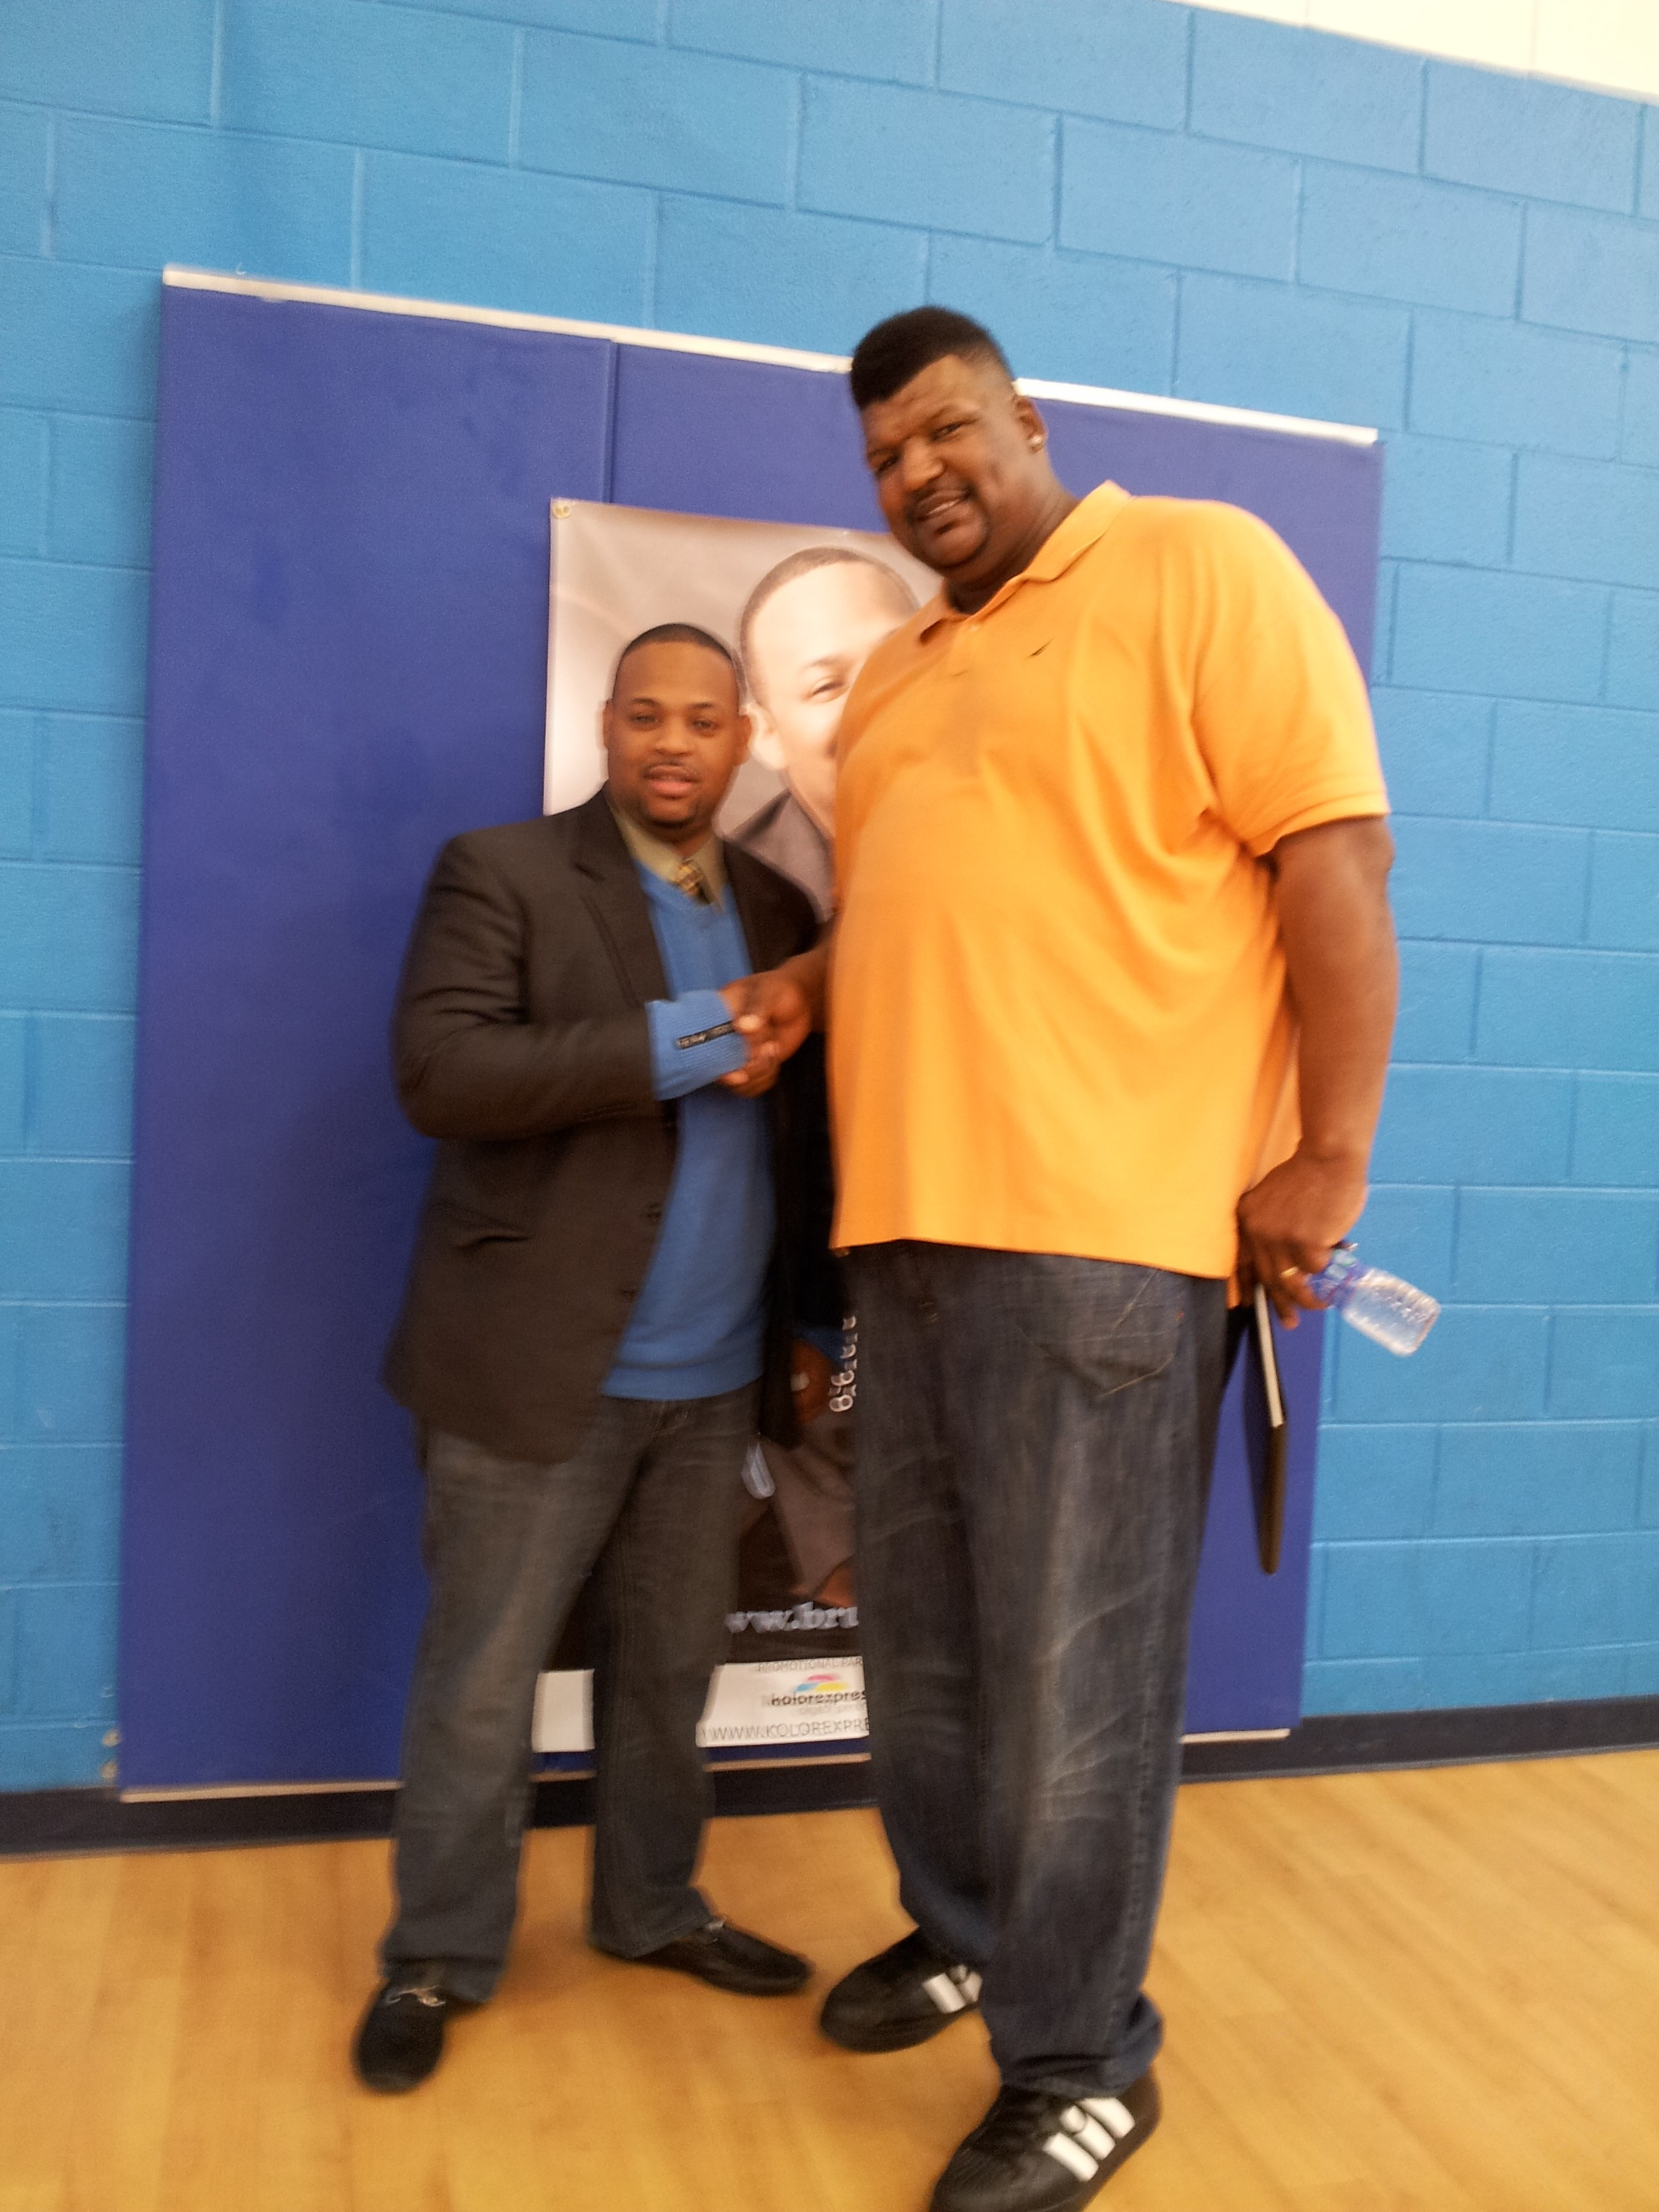 brutharay.com and luther wright